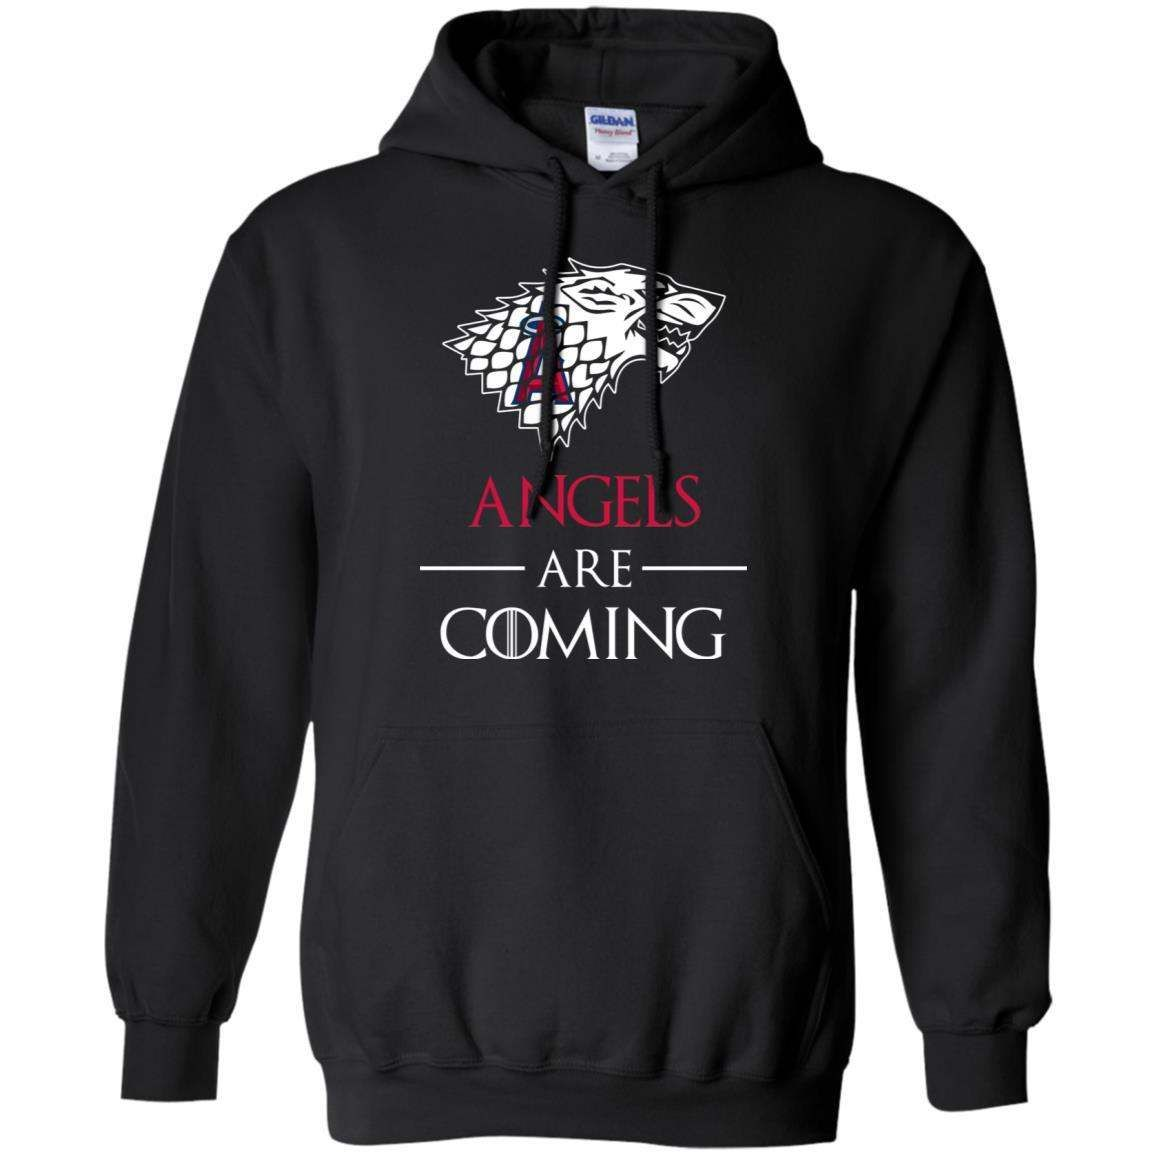 Los Angeles Angels stark house are coming funny Game of Thrones shirt Hoodie